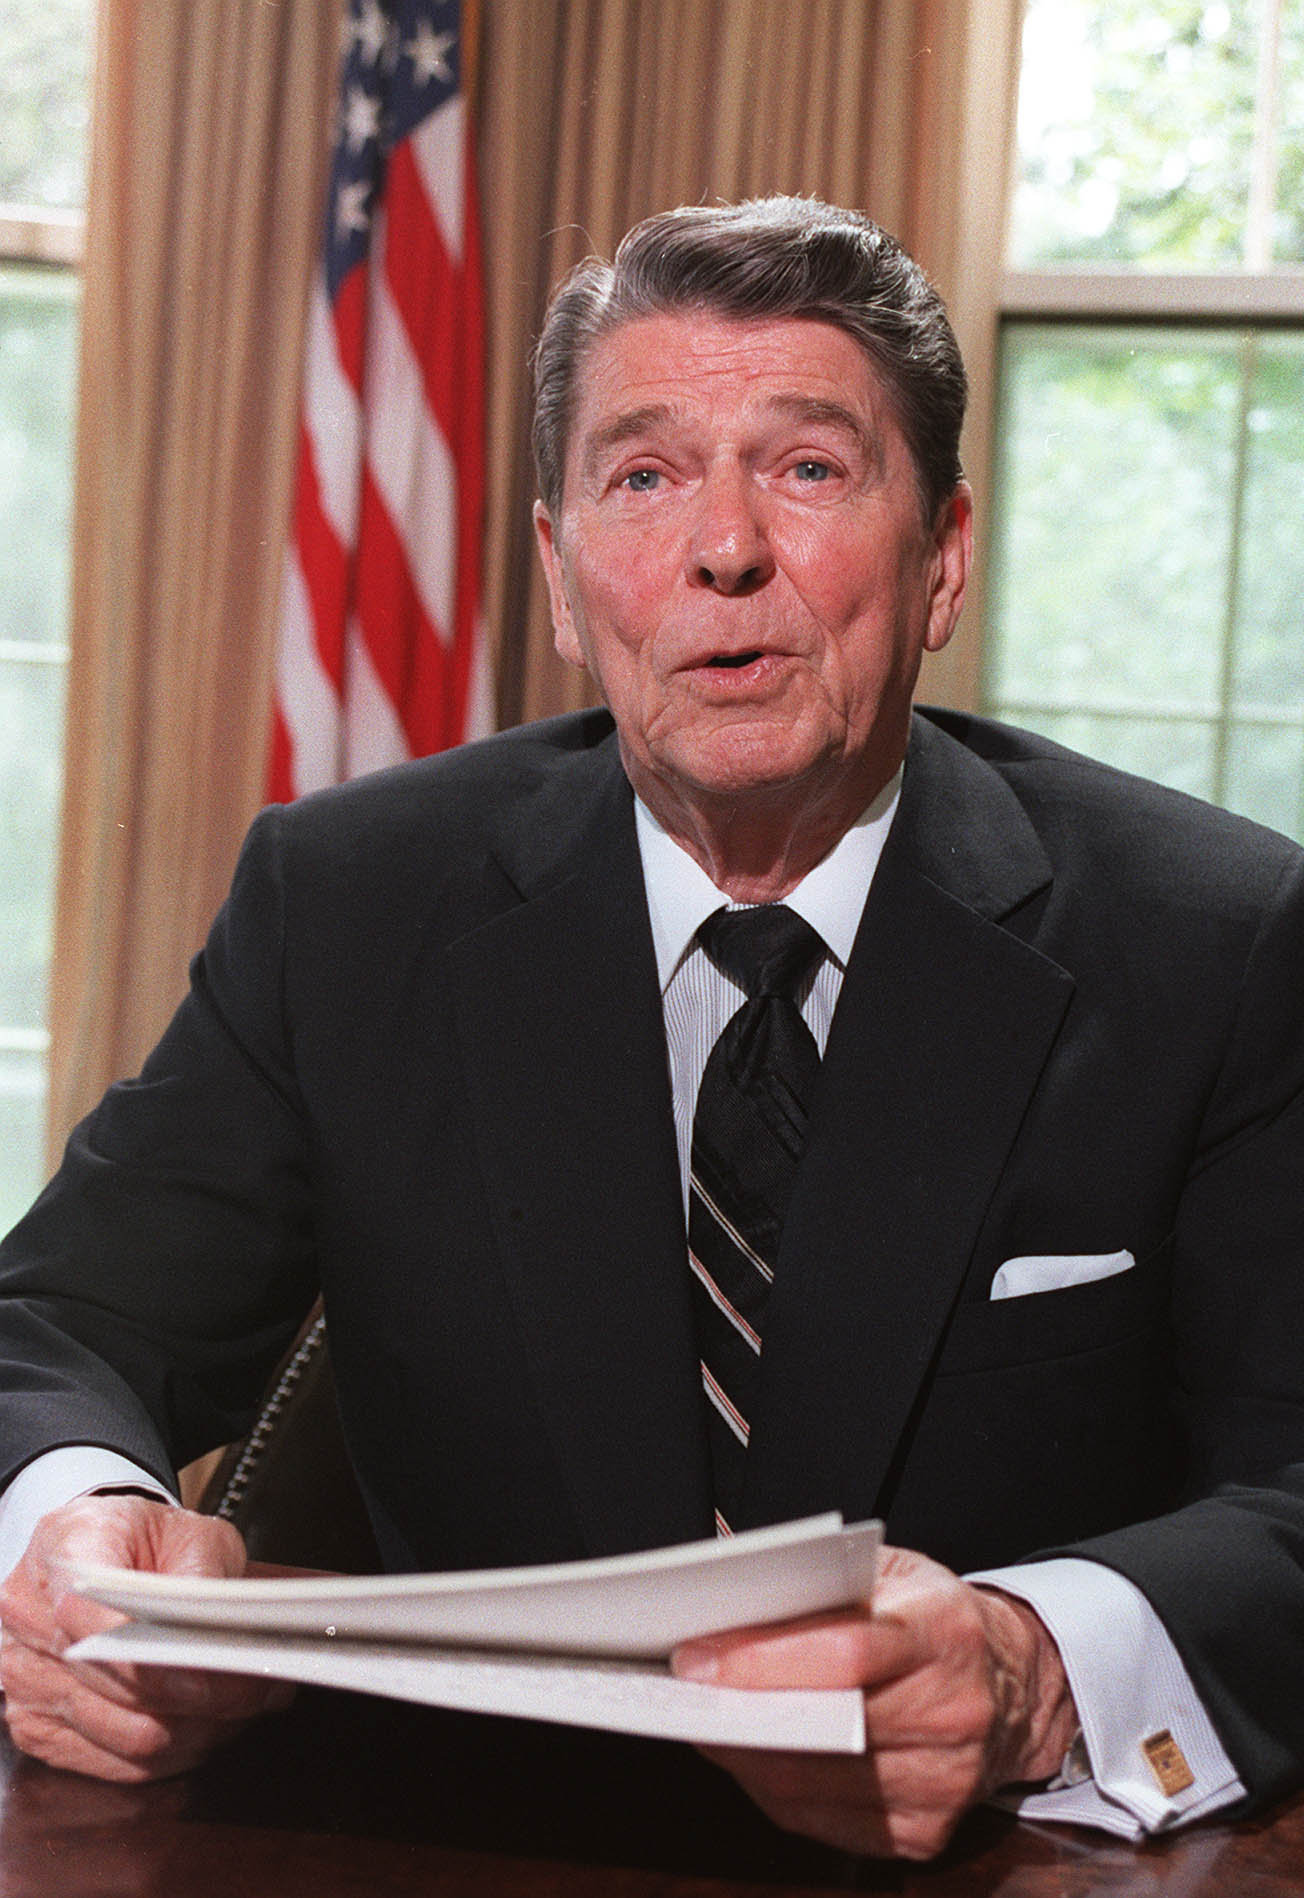 US President Ronald Reagan poses for photographers 24 June 1986 in the Oval Office at the White House, Washington,DC